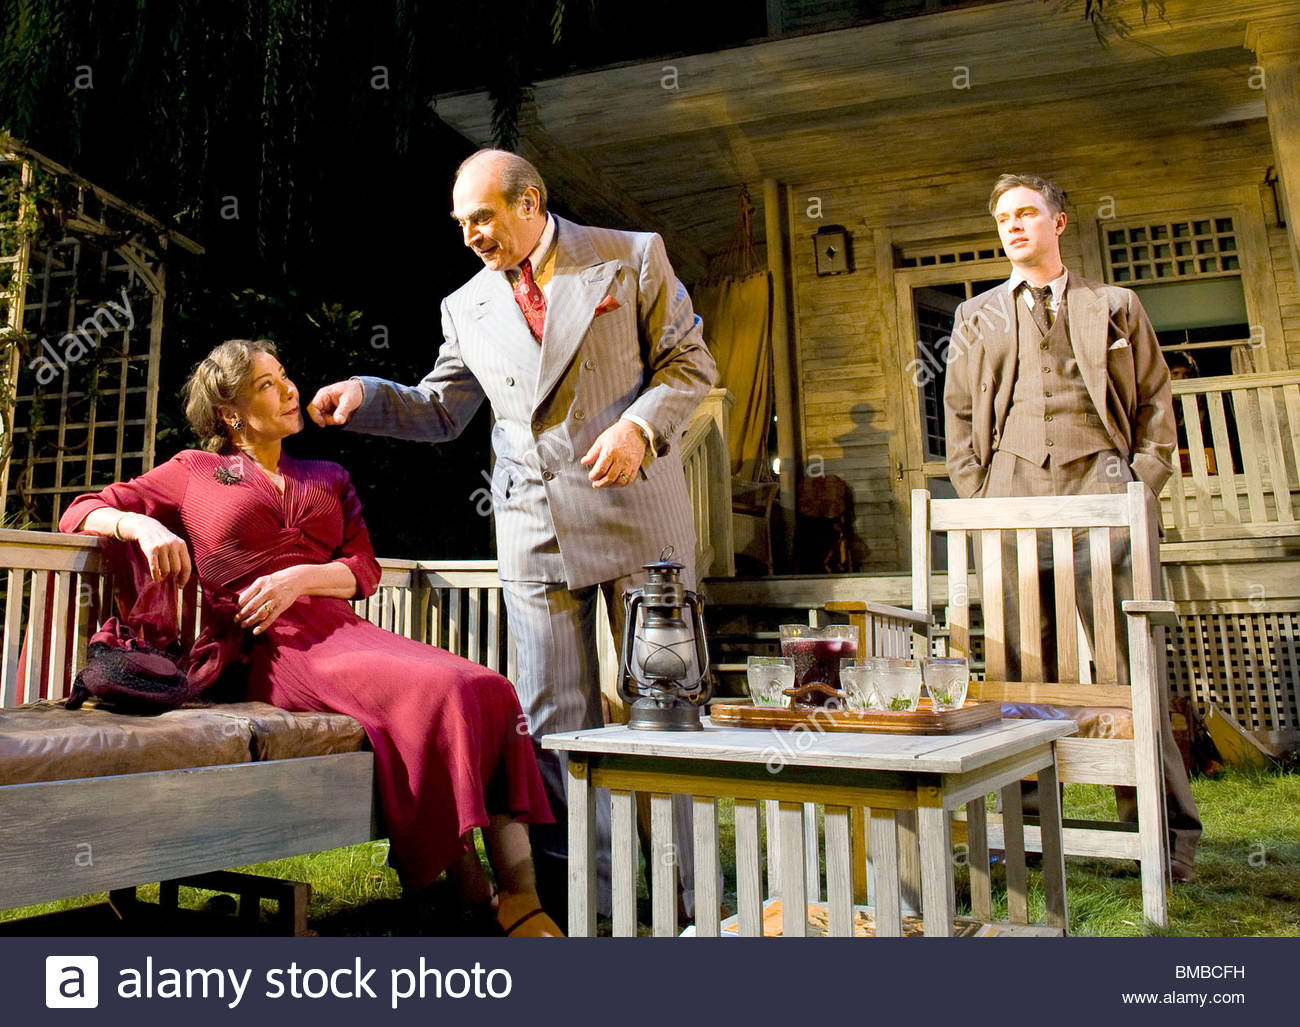 All My Sons by Arthur Miller,directed by Howard Davies.With Zoe Wanamaker as Kate Keller, David Suchet as Joe Keller, - Stock Image